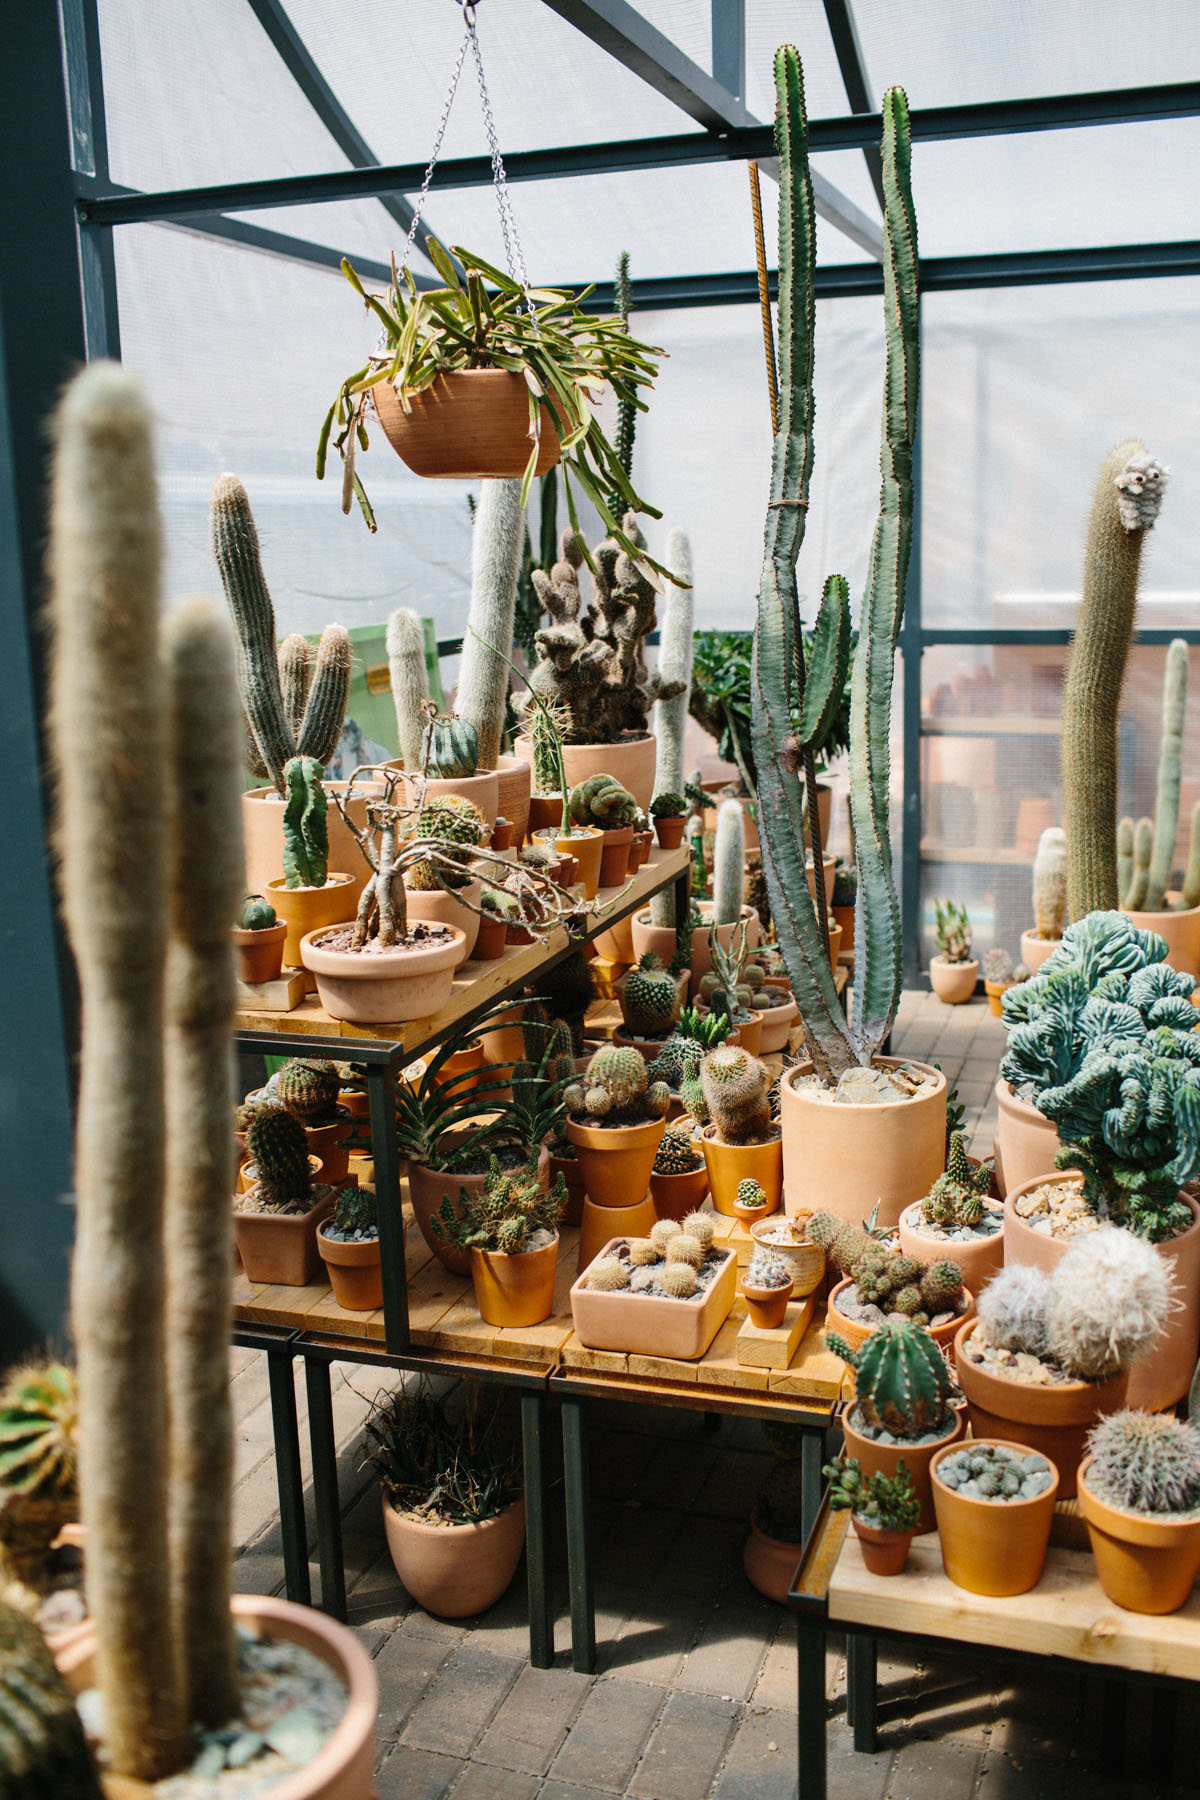 Cactus Pop-Up Shop in Chinatown